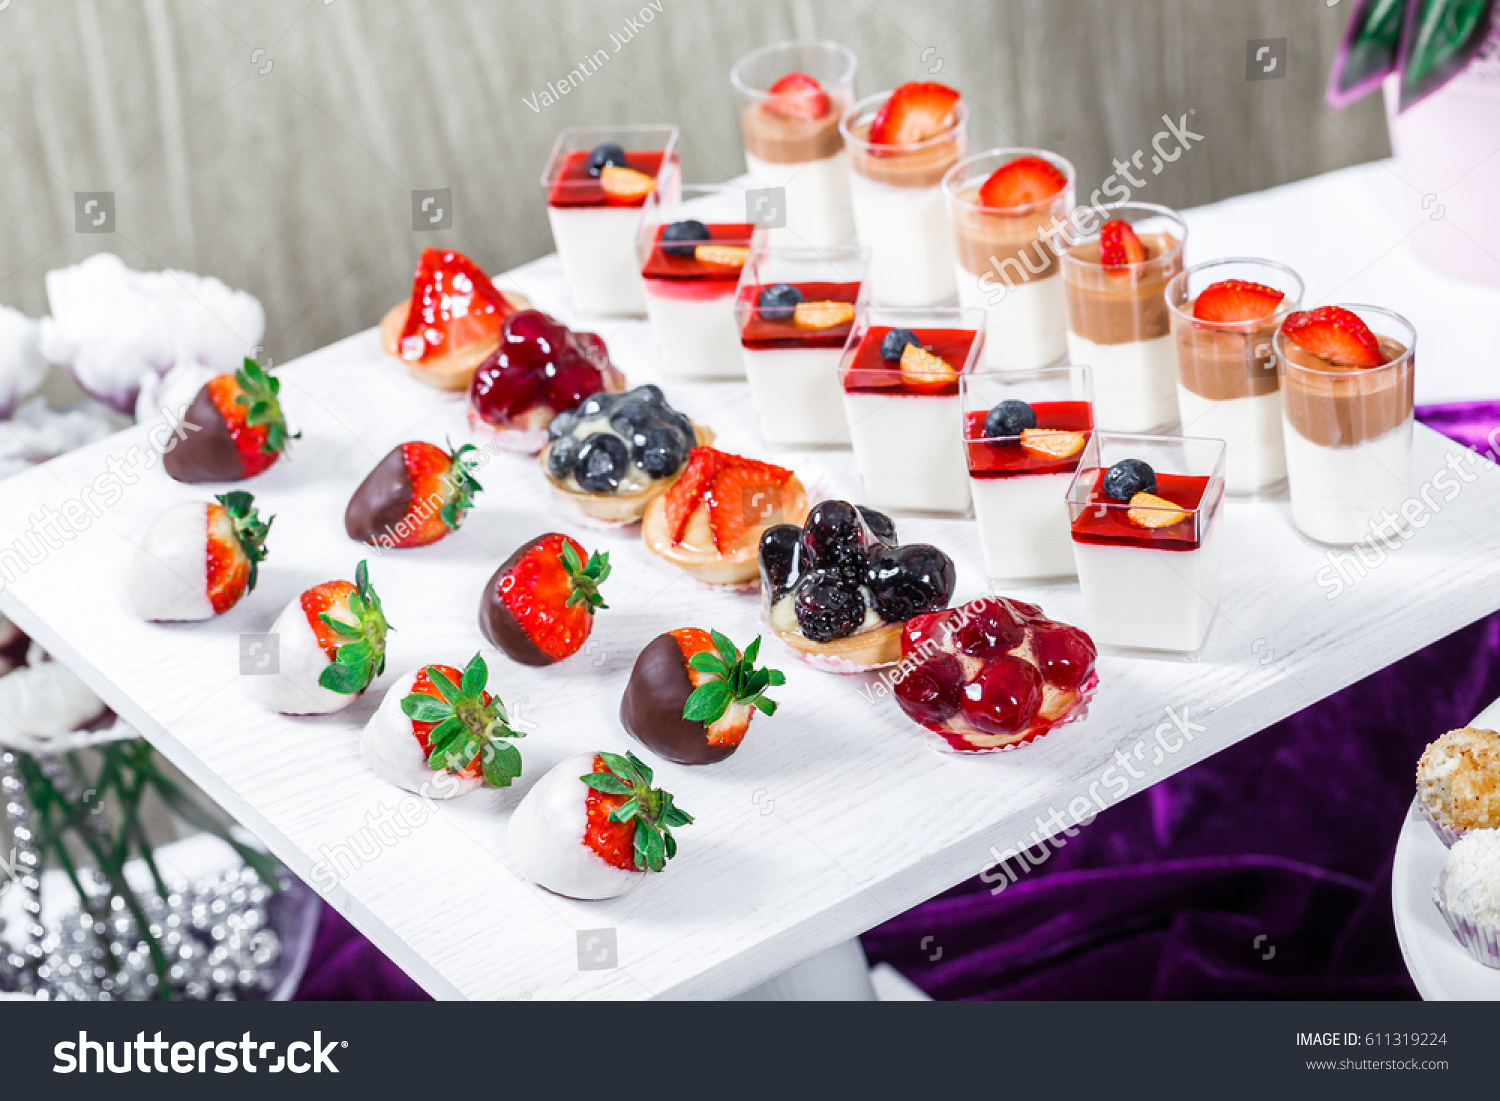 Royalty Free Candy Bar Wedding Reception Table With 611319224